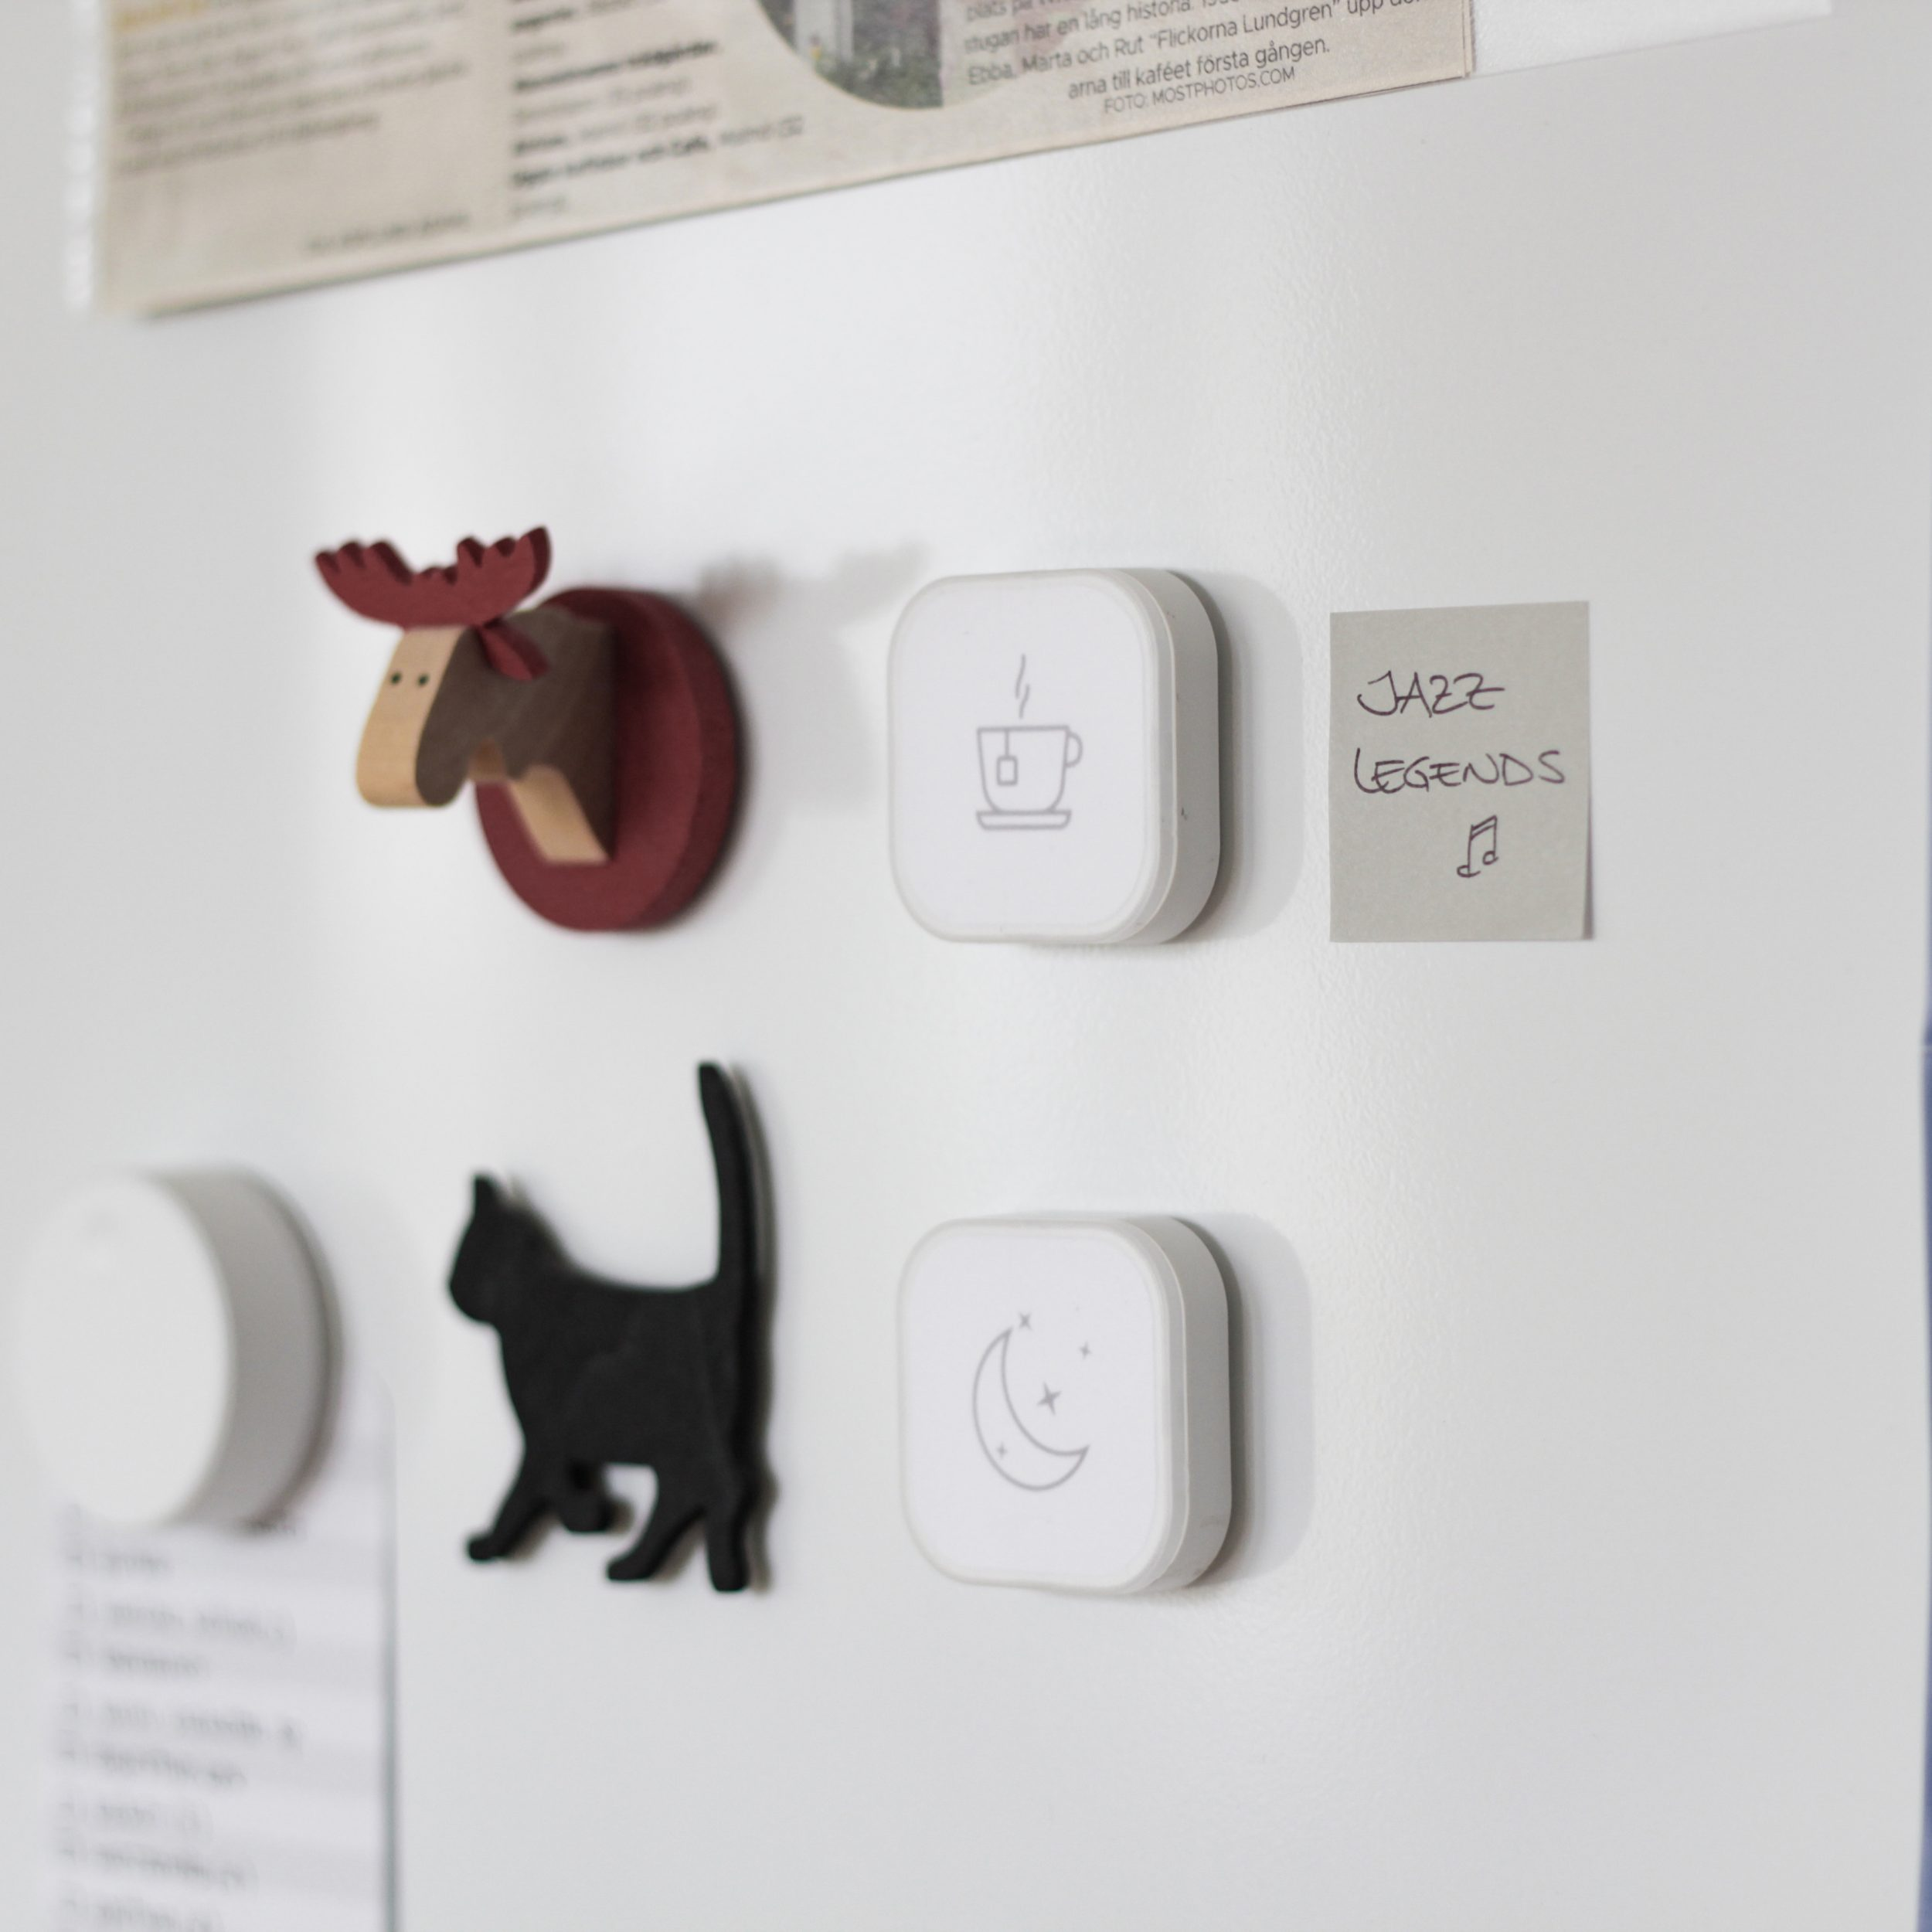 A wall with animal decorations and two TRÅDLÖS remote controls with stickers.